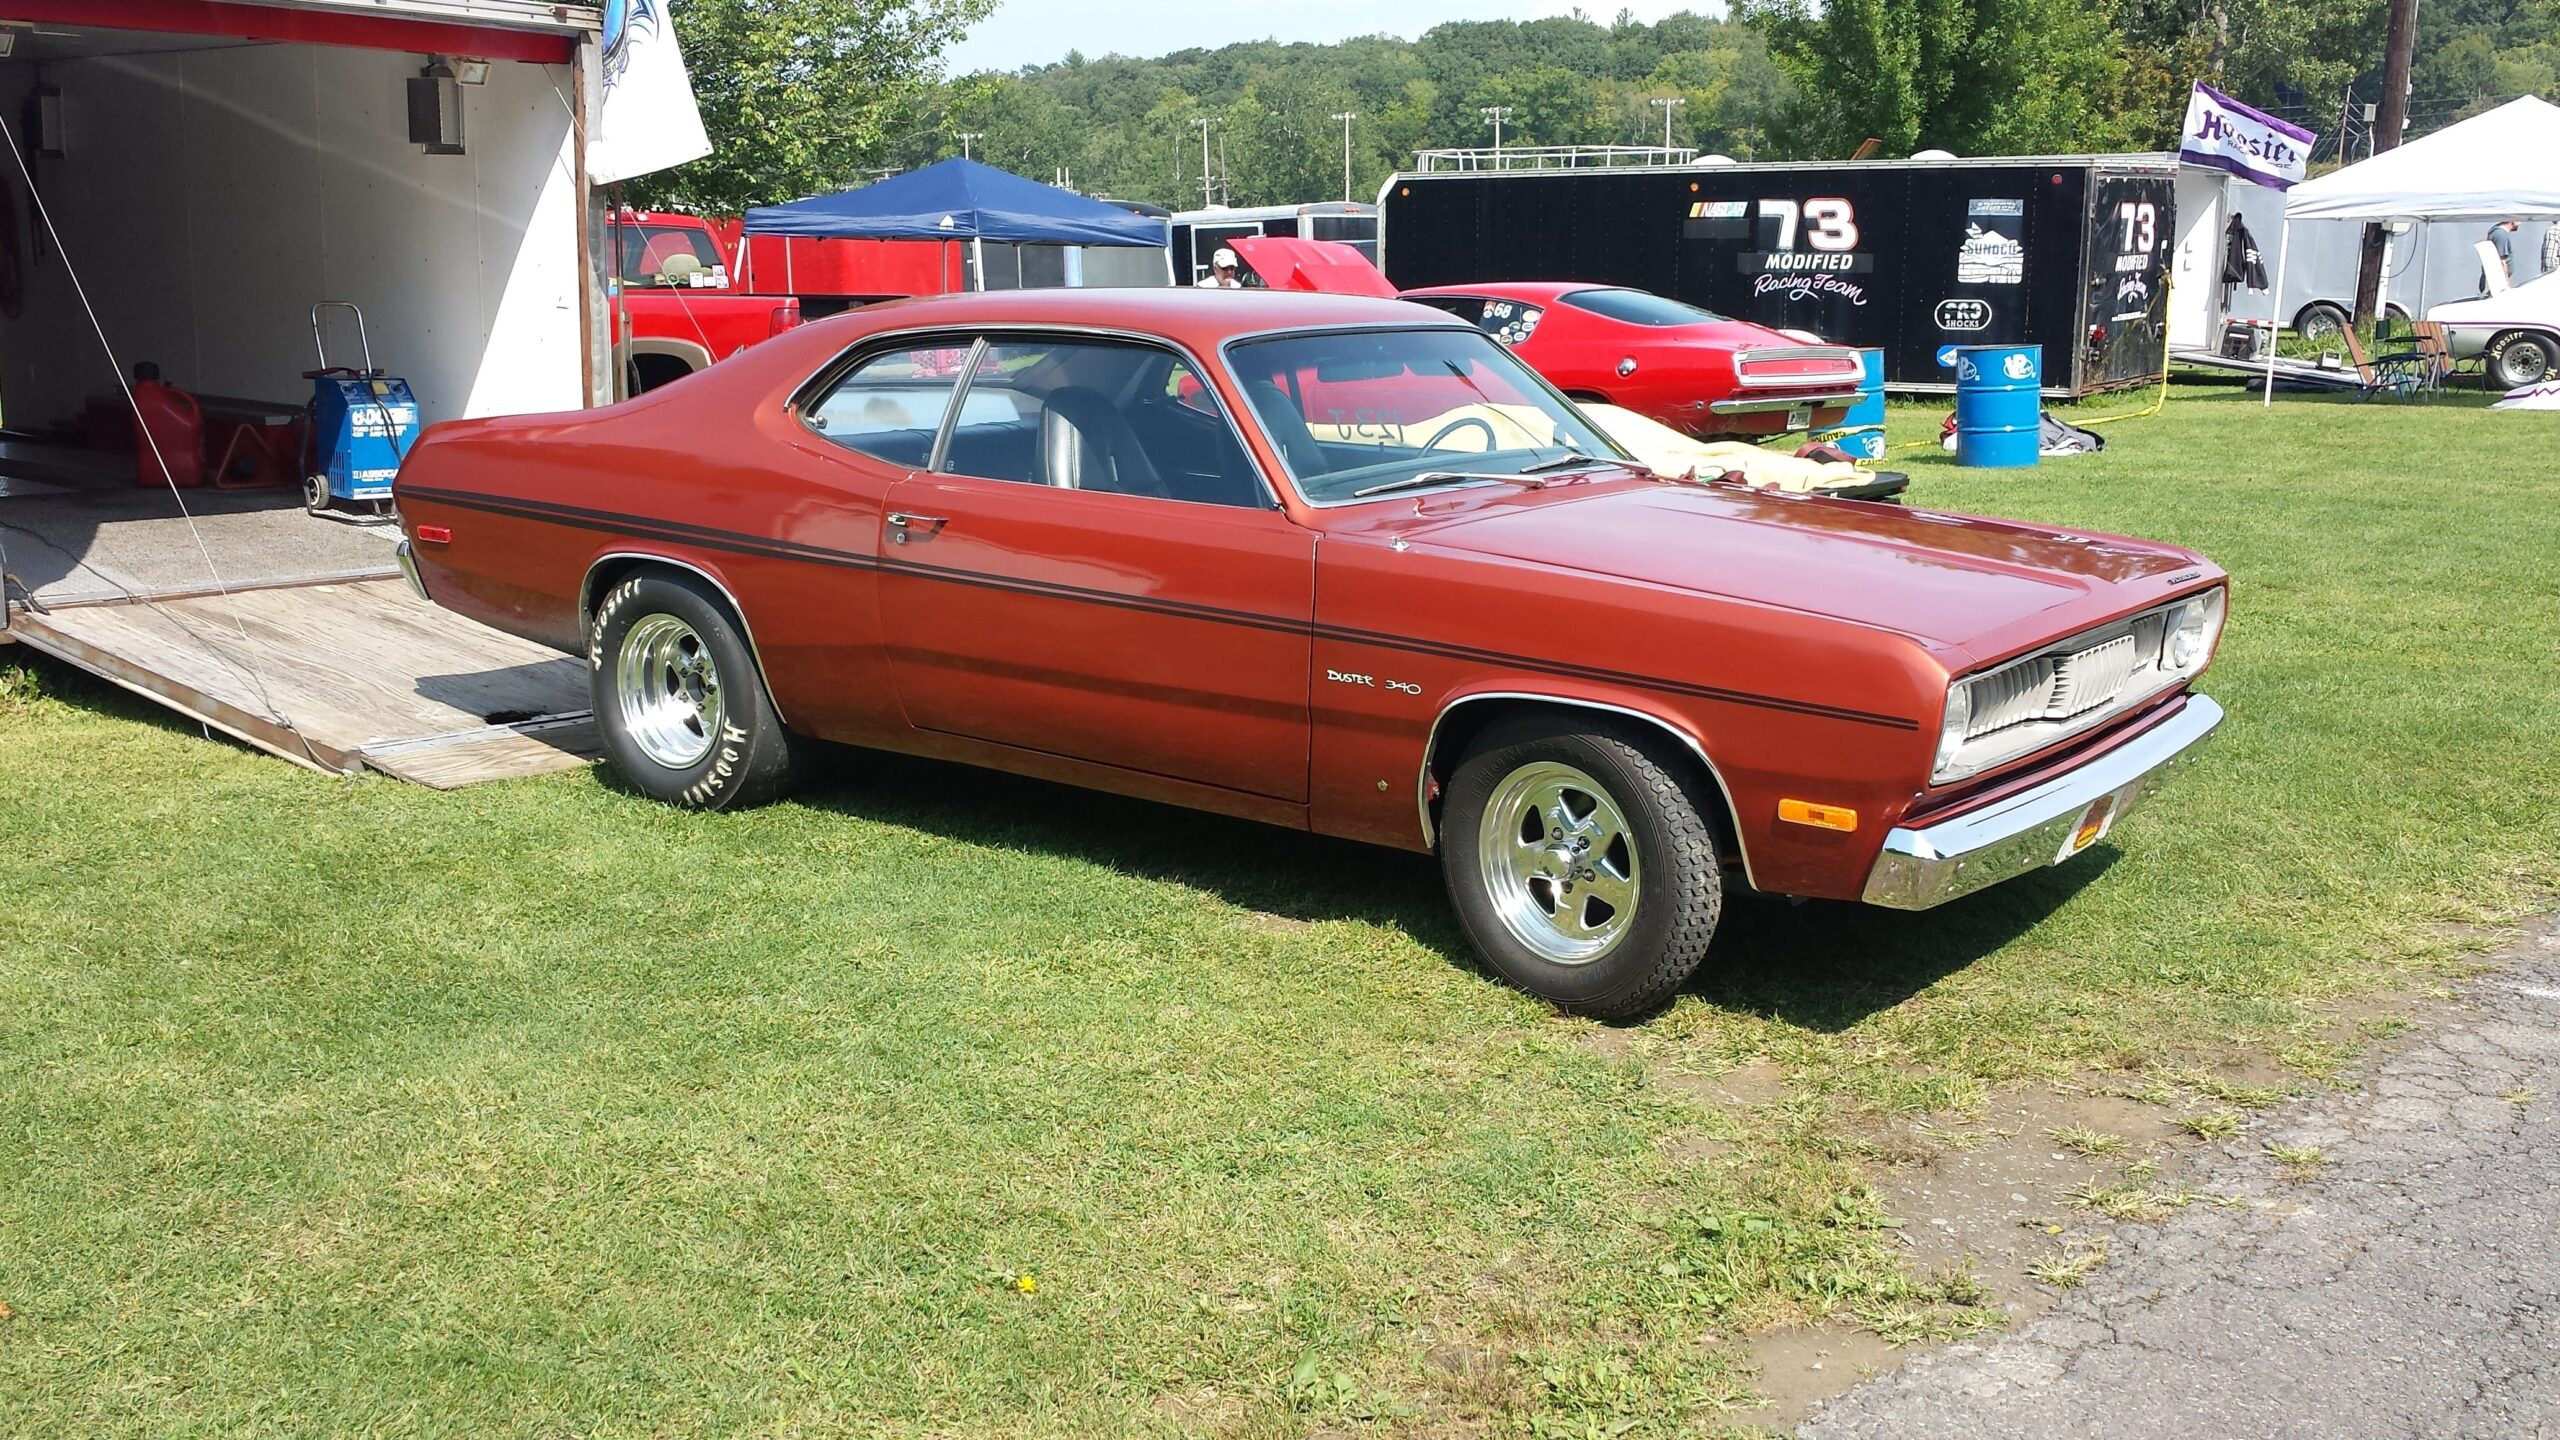 Bill Kirpens - Richmond, MA - 1971 Plymouth Duster